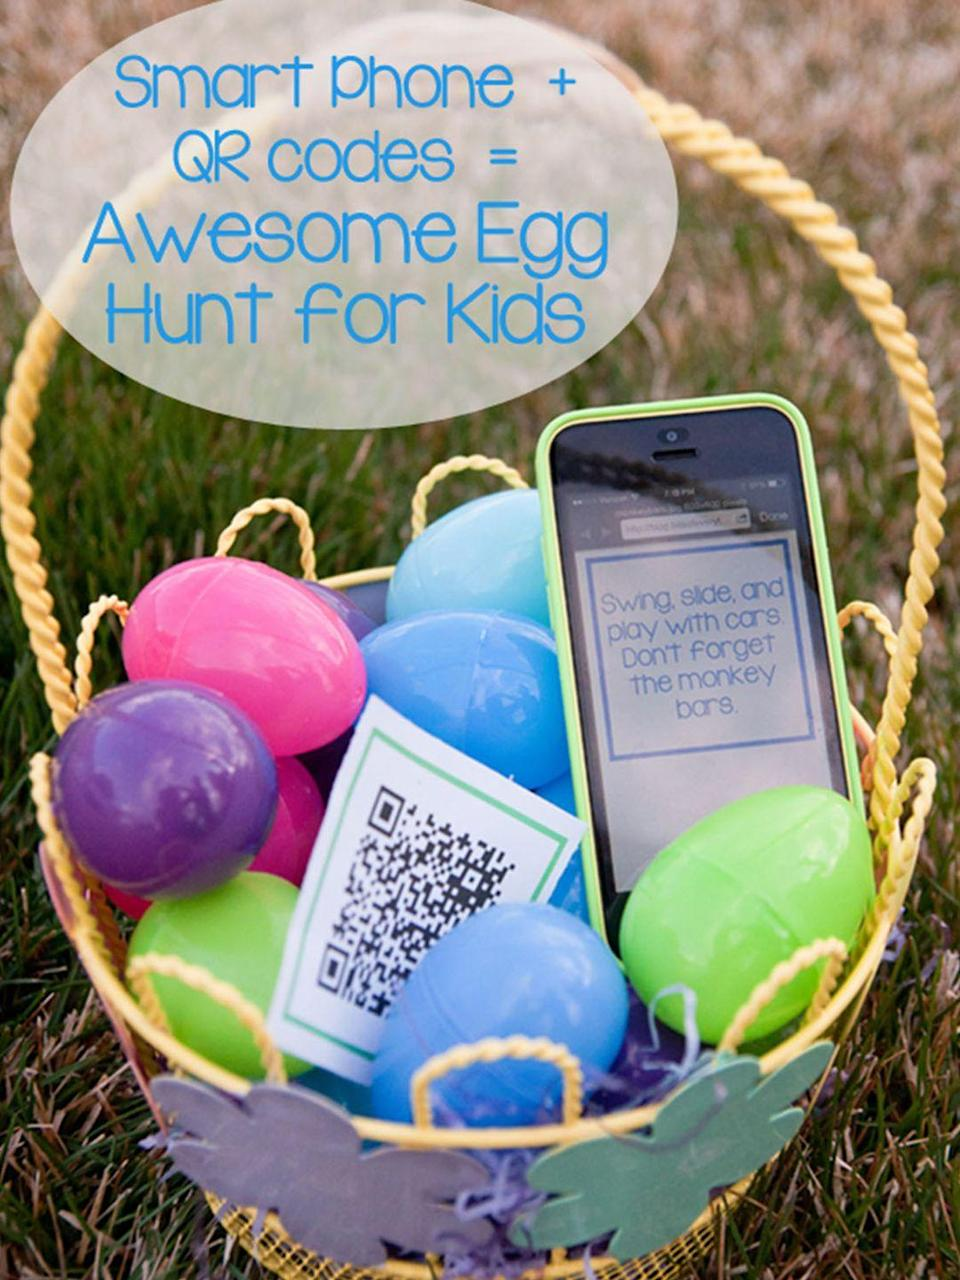 "<p>If your teens are at the stage where they think they're too cool for Easter egg hunts, this high-tech hunt will change their tune. </p><p><em><a href=""http://blog.bitsofeverything.com/2014/04/smart-phone-easter-egg-hunt-older-kids.html/2"" rel=""nofollow noopener"" target=""_blank"" data-ylk=""slk:Get the tutorial from Bits of Everything »"" class=""link rapid-noclick-resp"">Get the tutorial from Bits of Everything »</a></em> </p>"